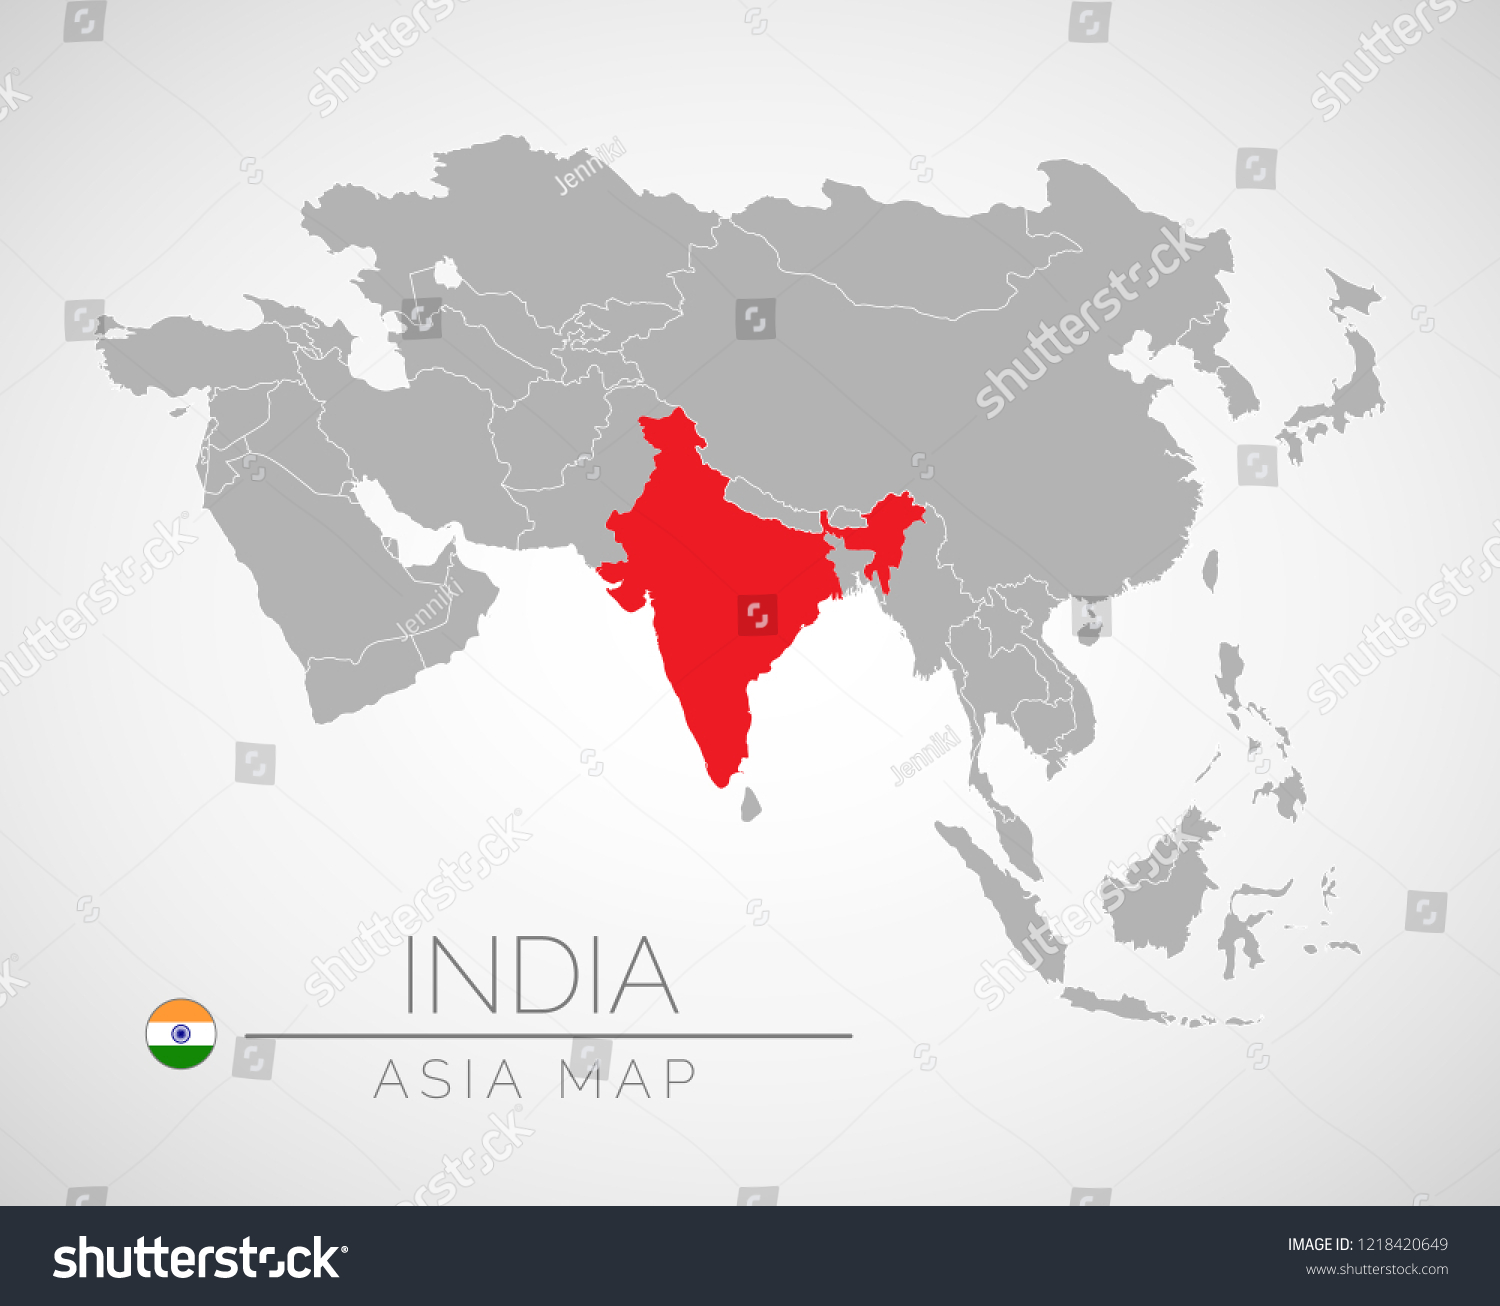 India In Asia Map.Map Asia Identication India Map India Stock Vector Royalty Free